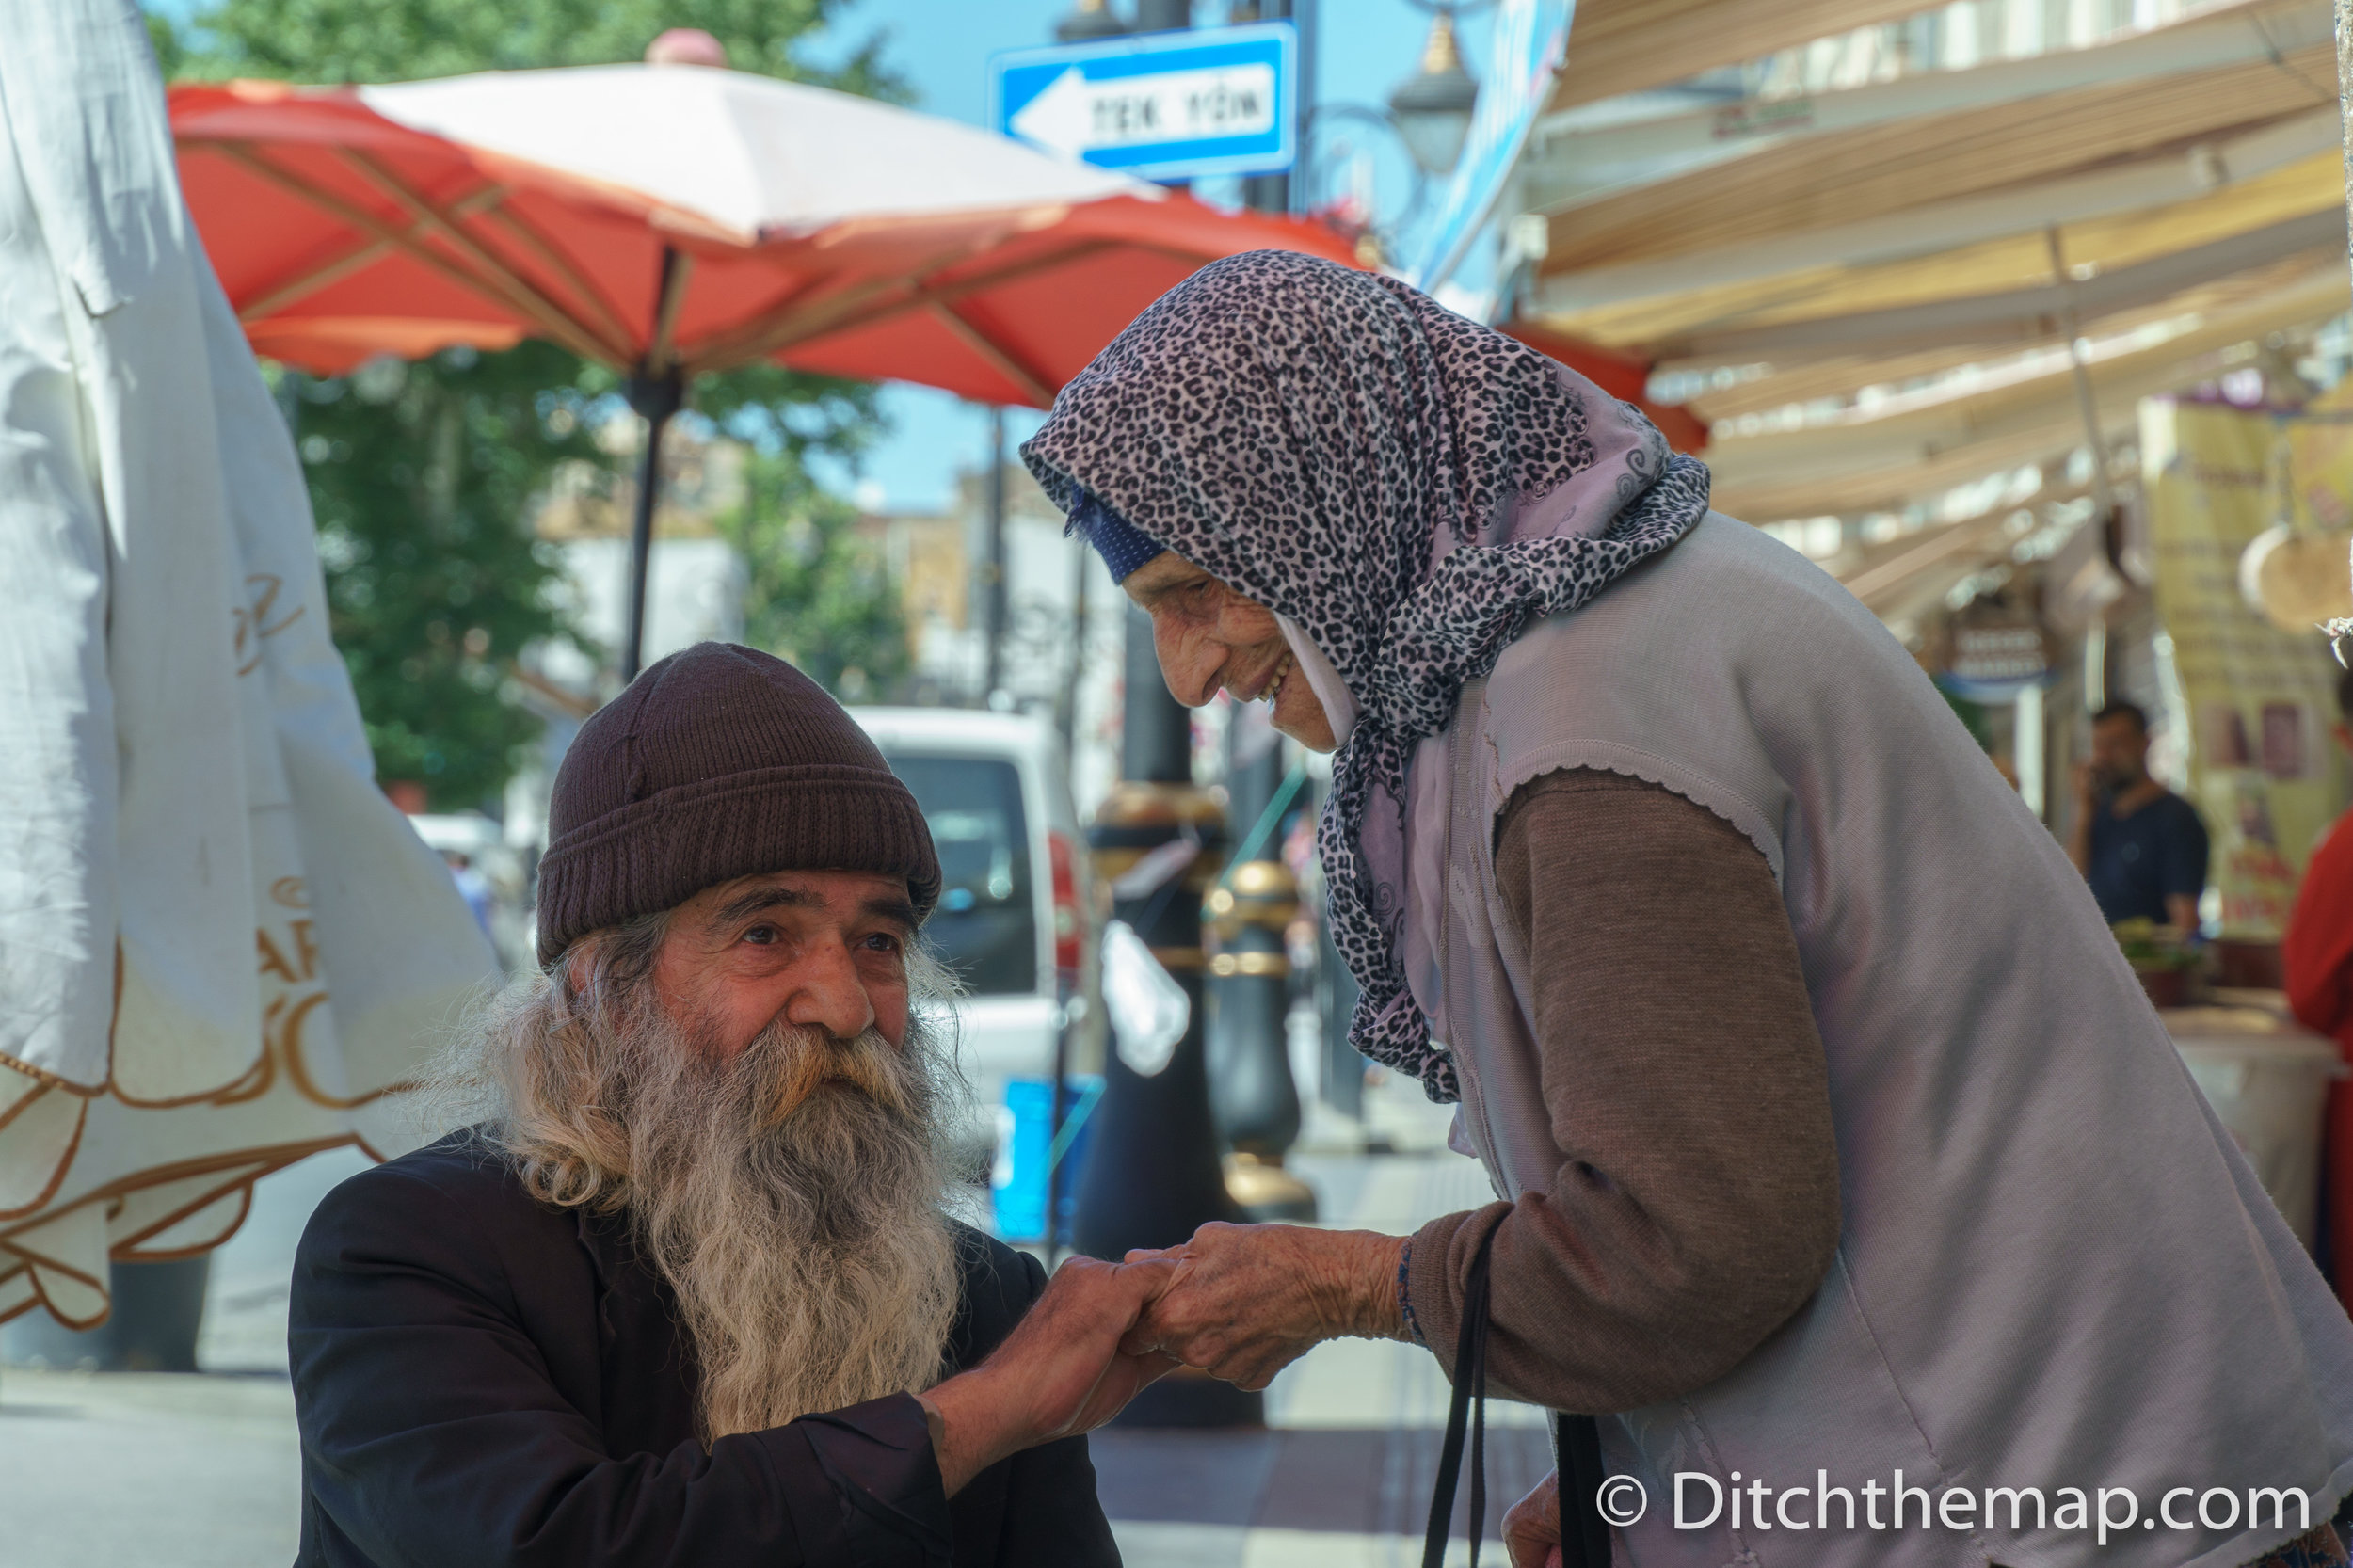 Man and woman share an embrace in Old City, Diyarbakir